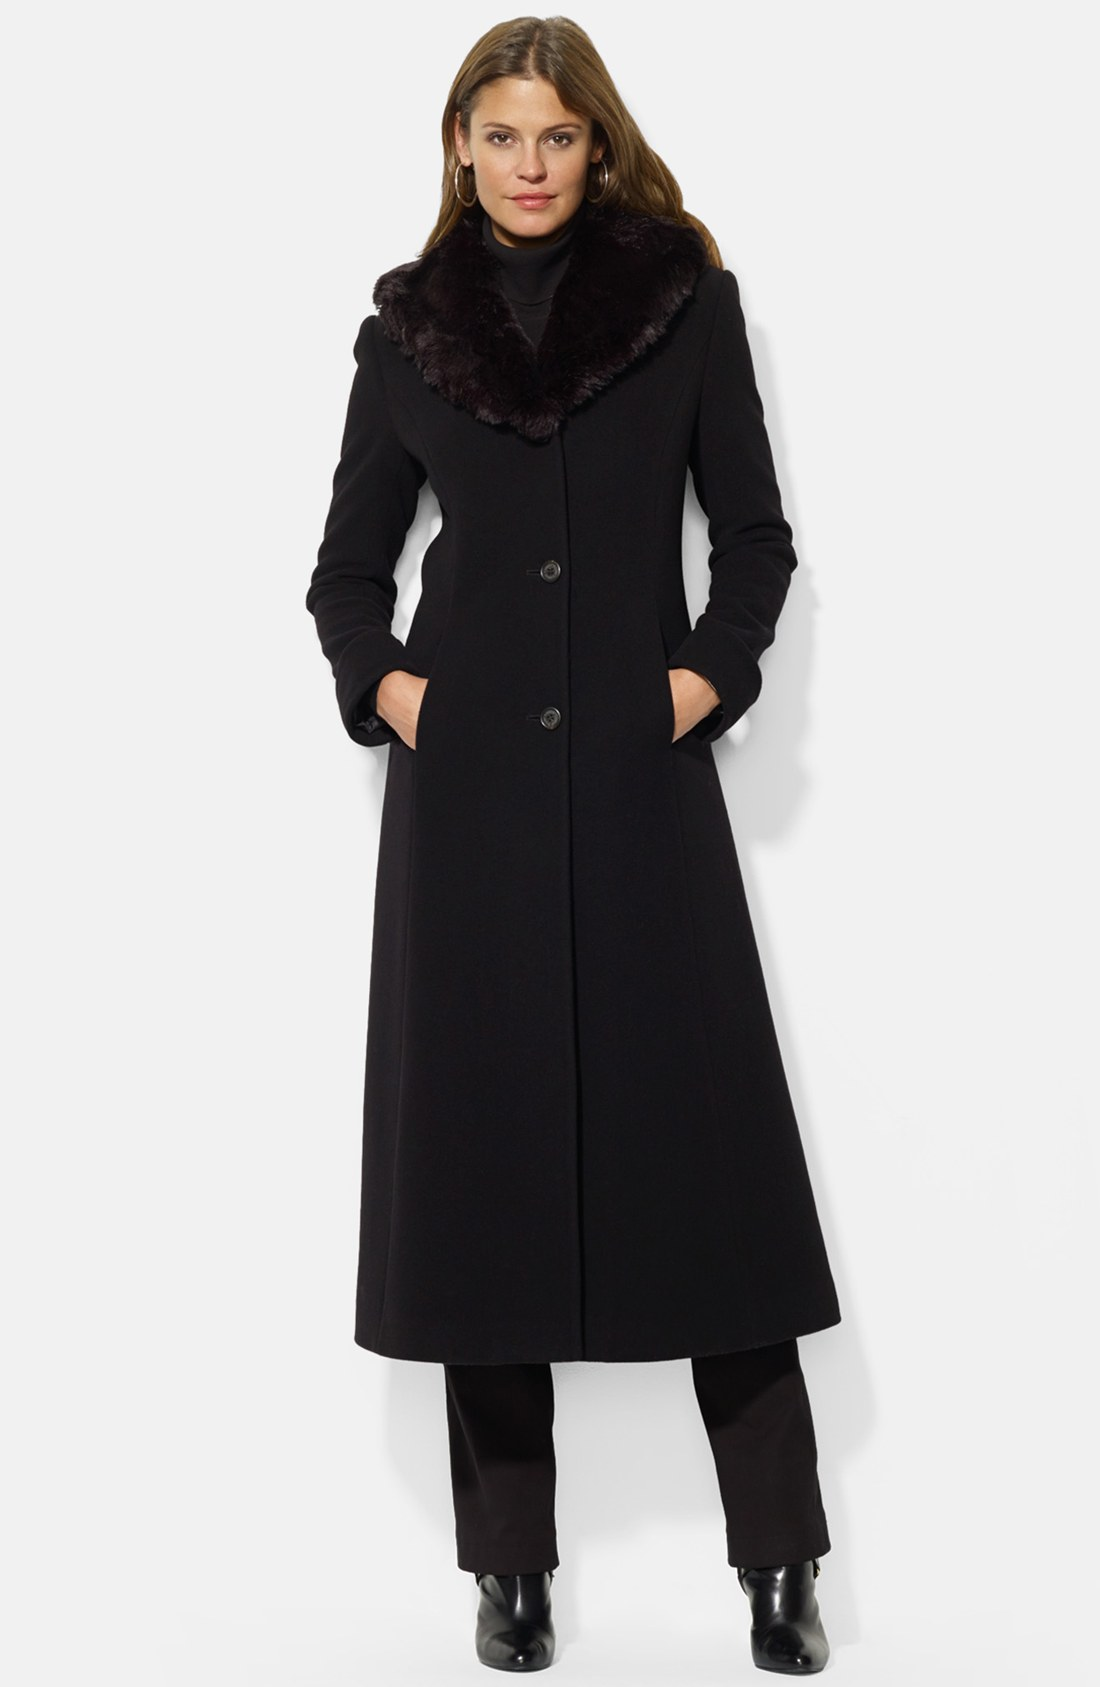 Shop the latest Long Wool Maxi Coats products from Liva Girl, IdsBooks, KCOVINTAGE on Etsy, The Style and more on Wanelo, the world's biggest shopping mall.